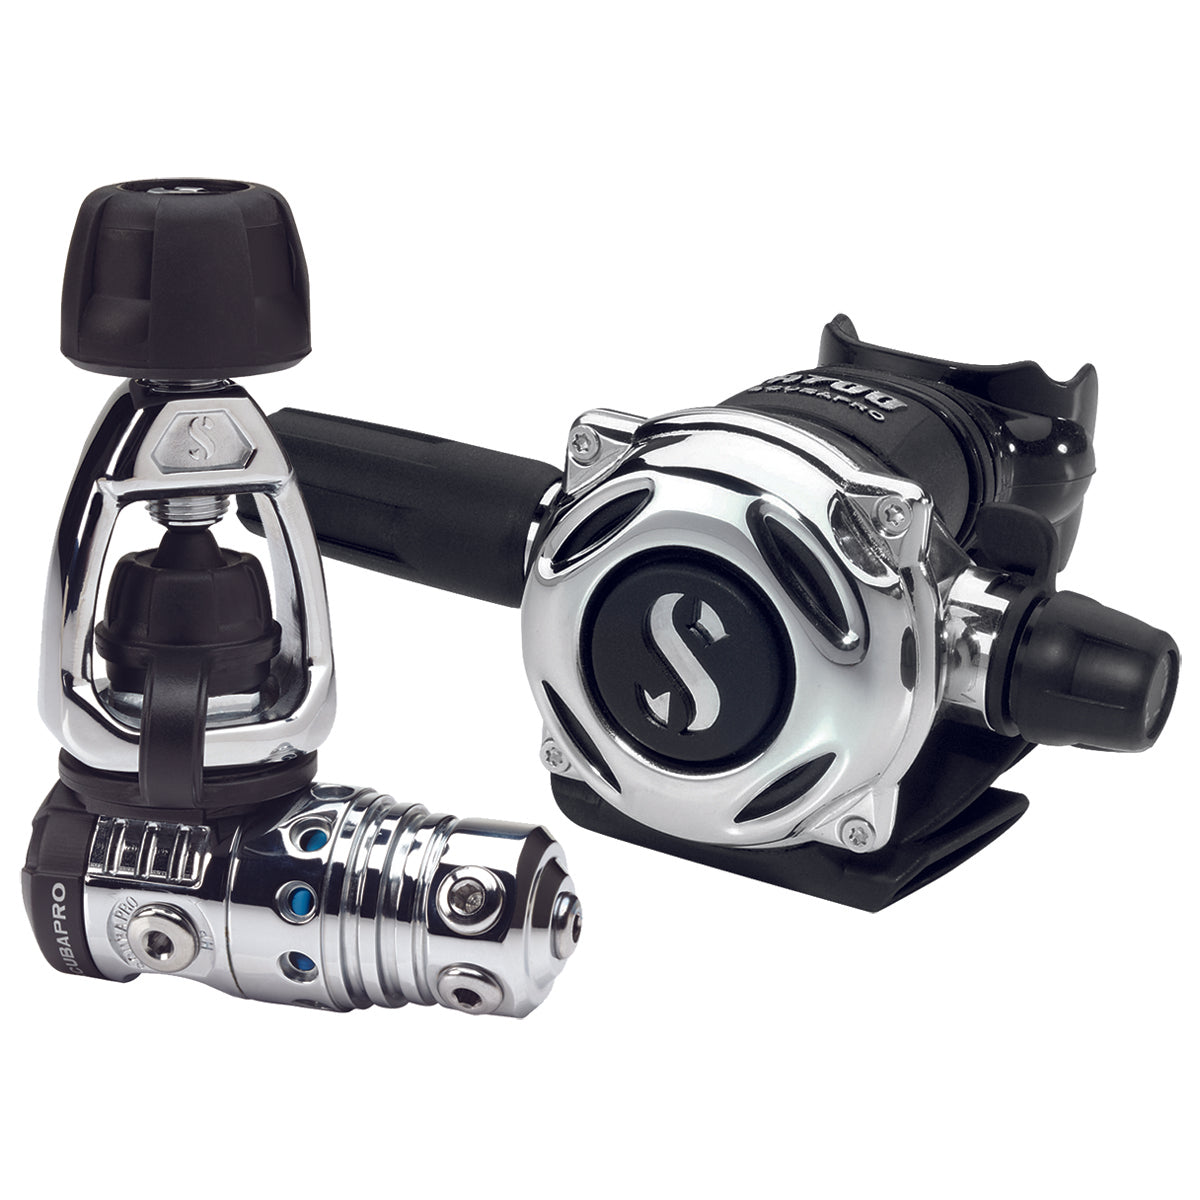 MK25 EVO/A700 DIVE REGULATOR SYSTEM, INT